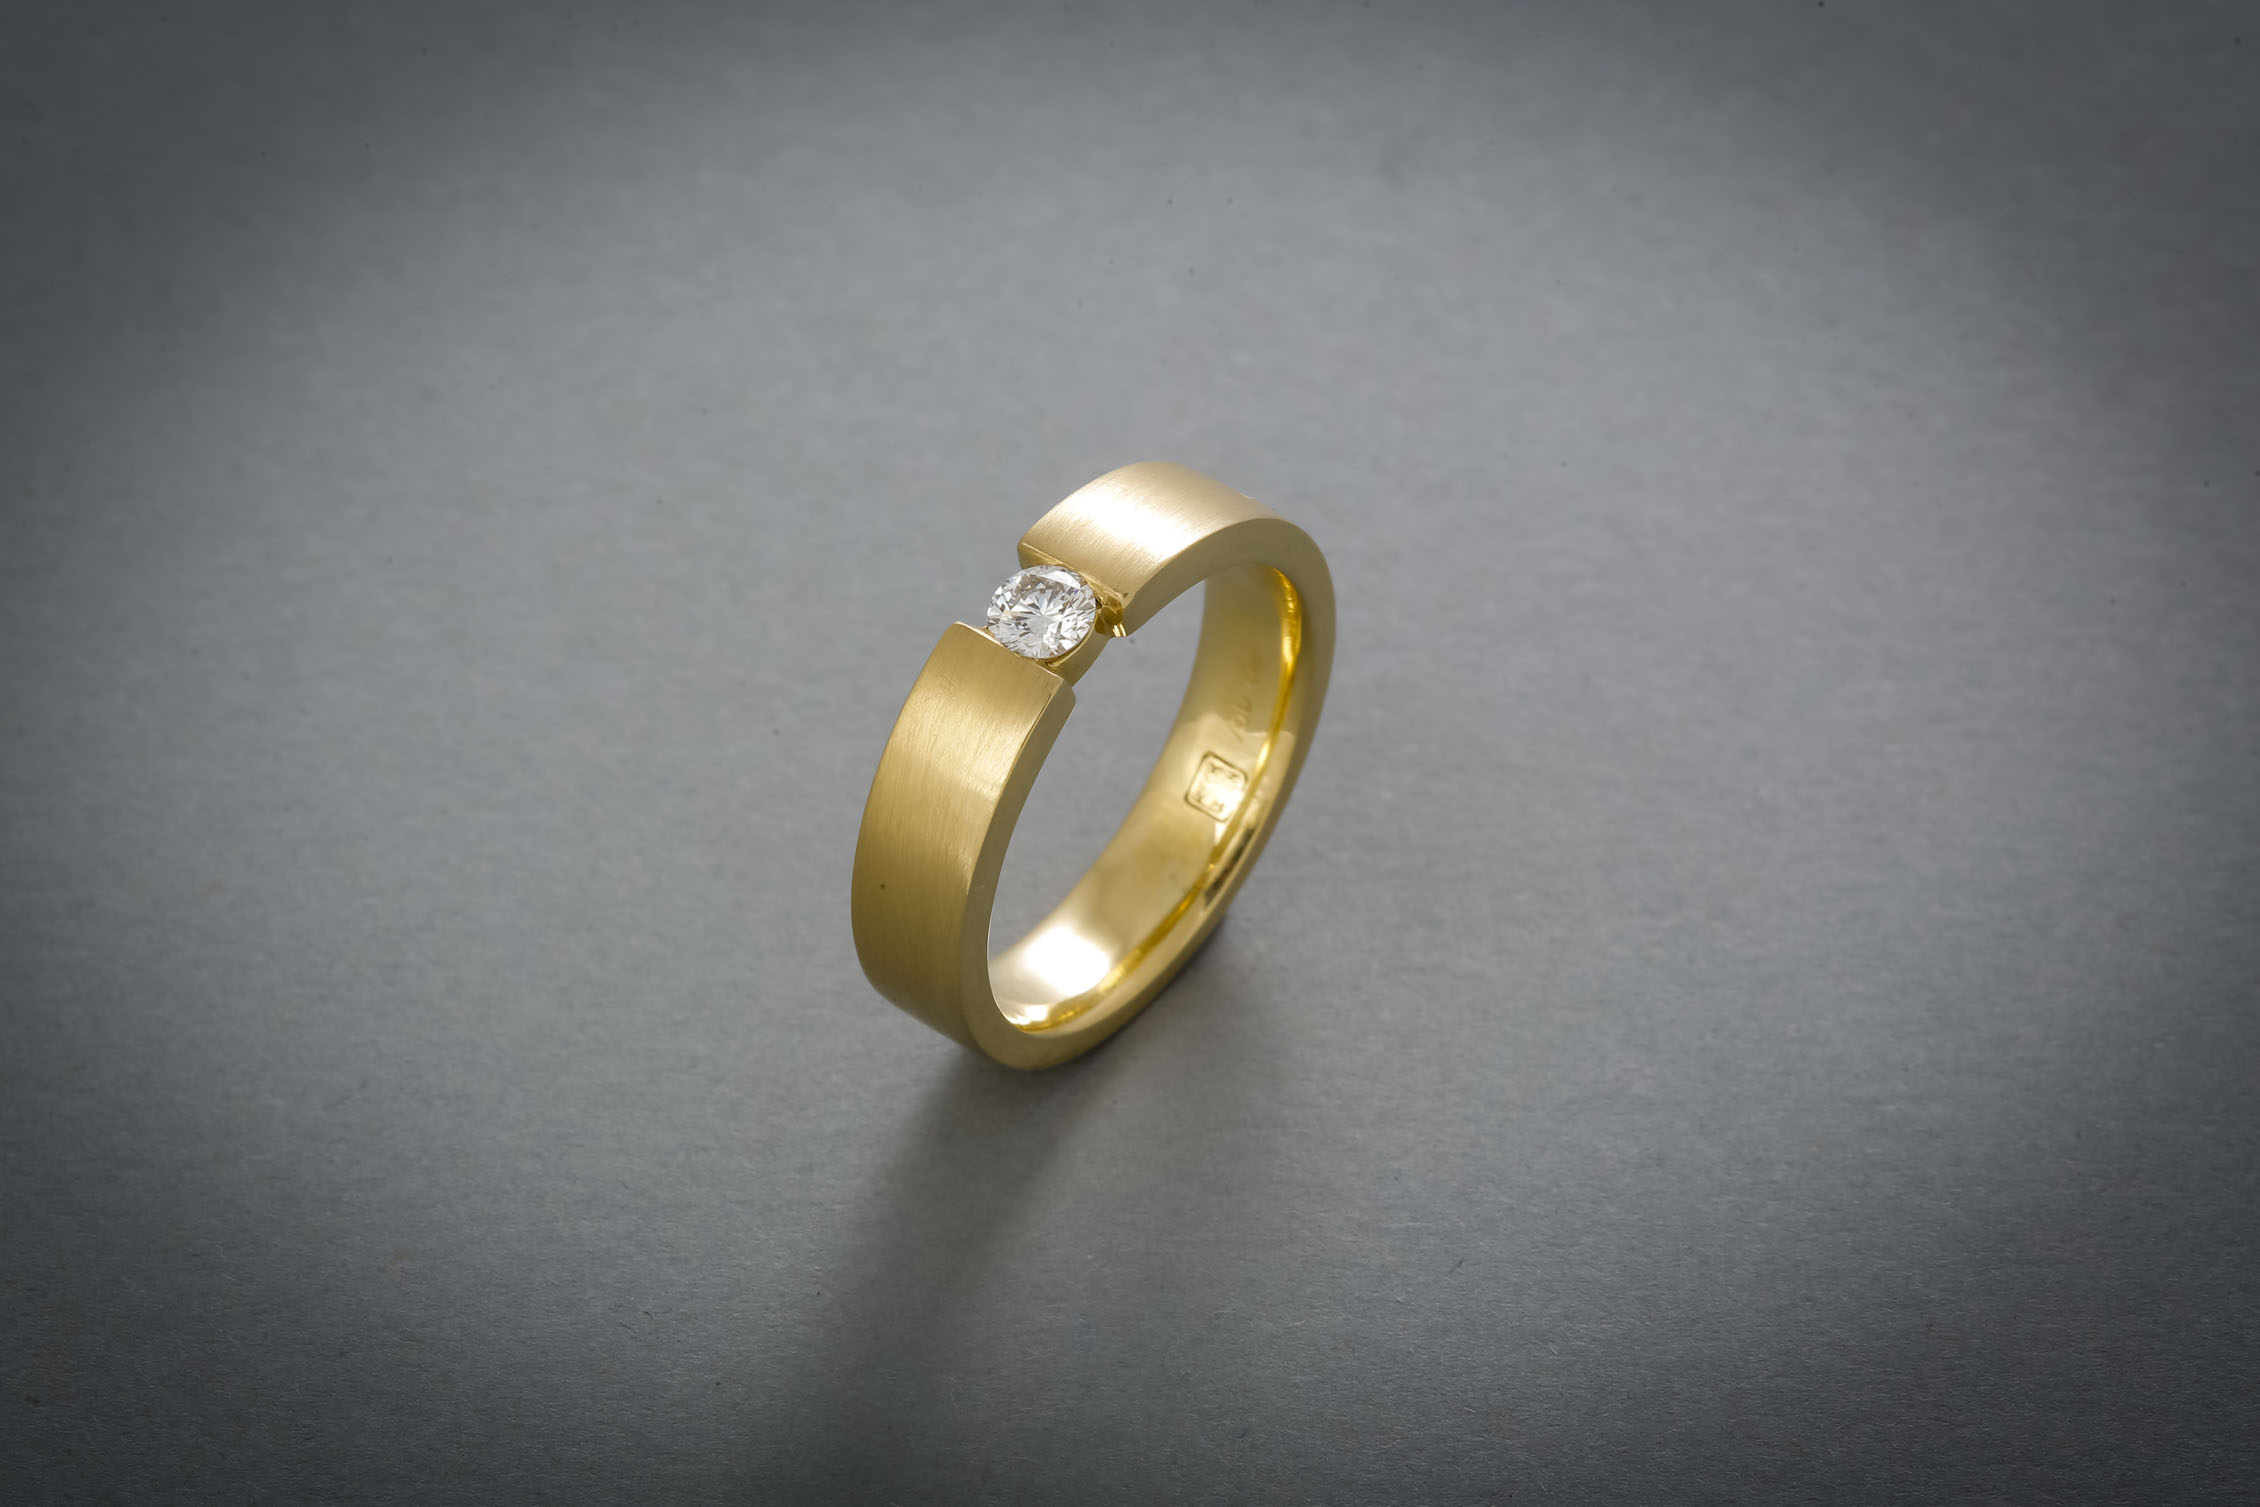 076 Spannring, Gold, Brillant ab € 1628,-